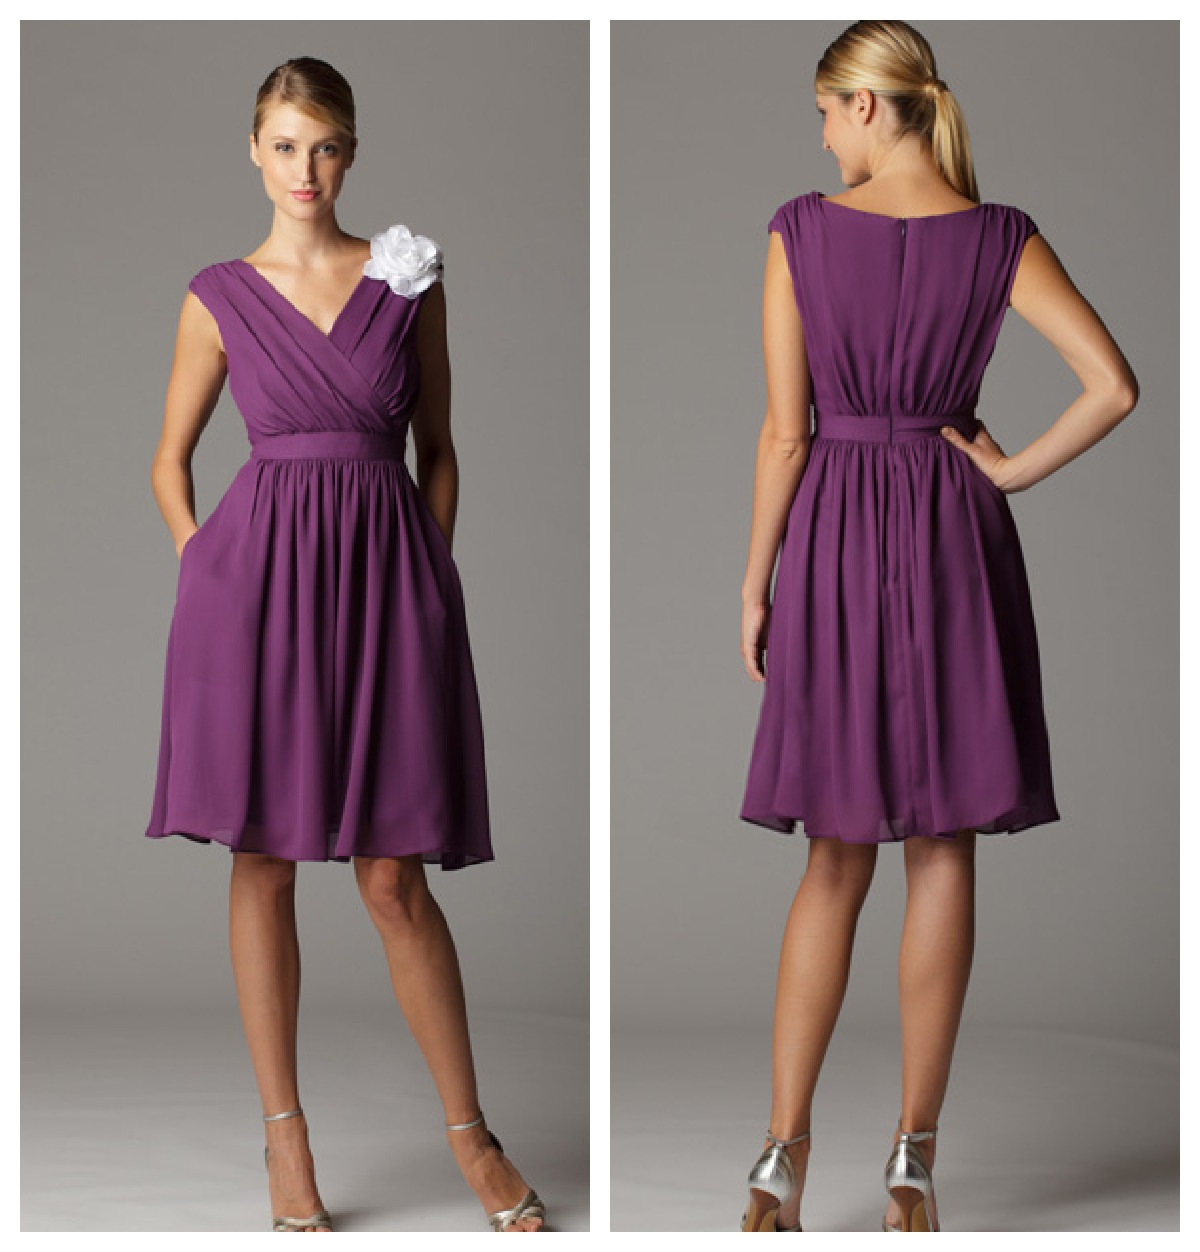 Worn Bridesmaid Dresses 6